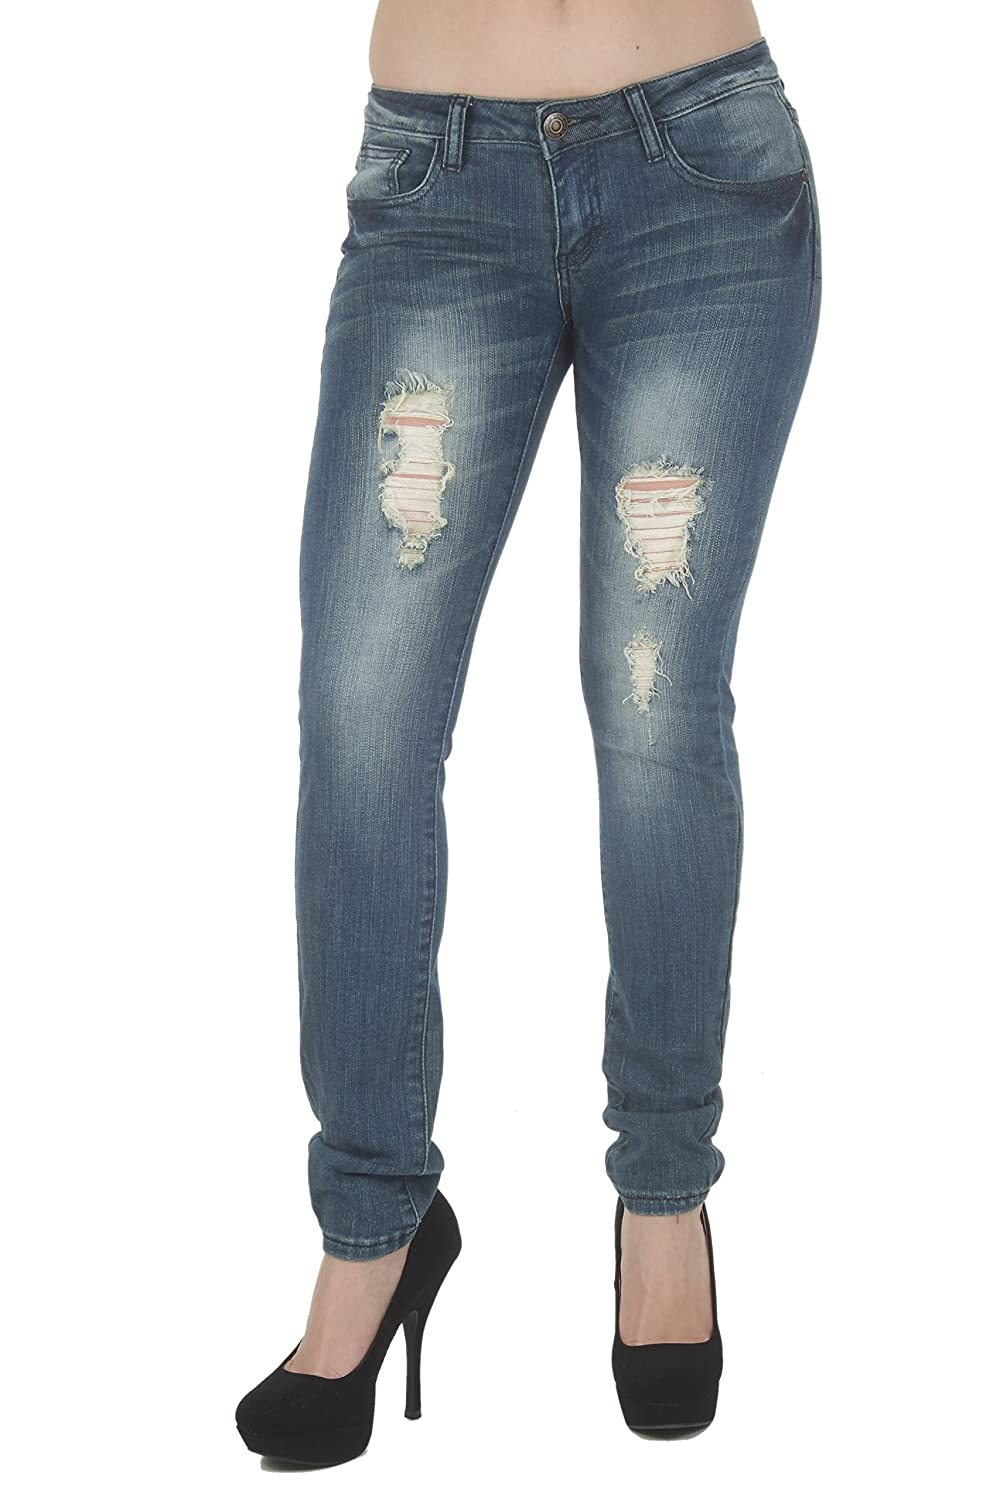 1A7121 – Women's Juniors Low Rise Distressed Destroyed Premium Skinny Jeans